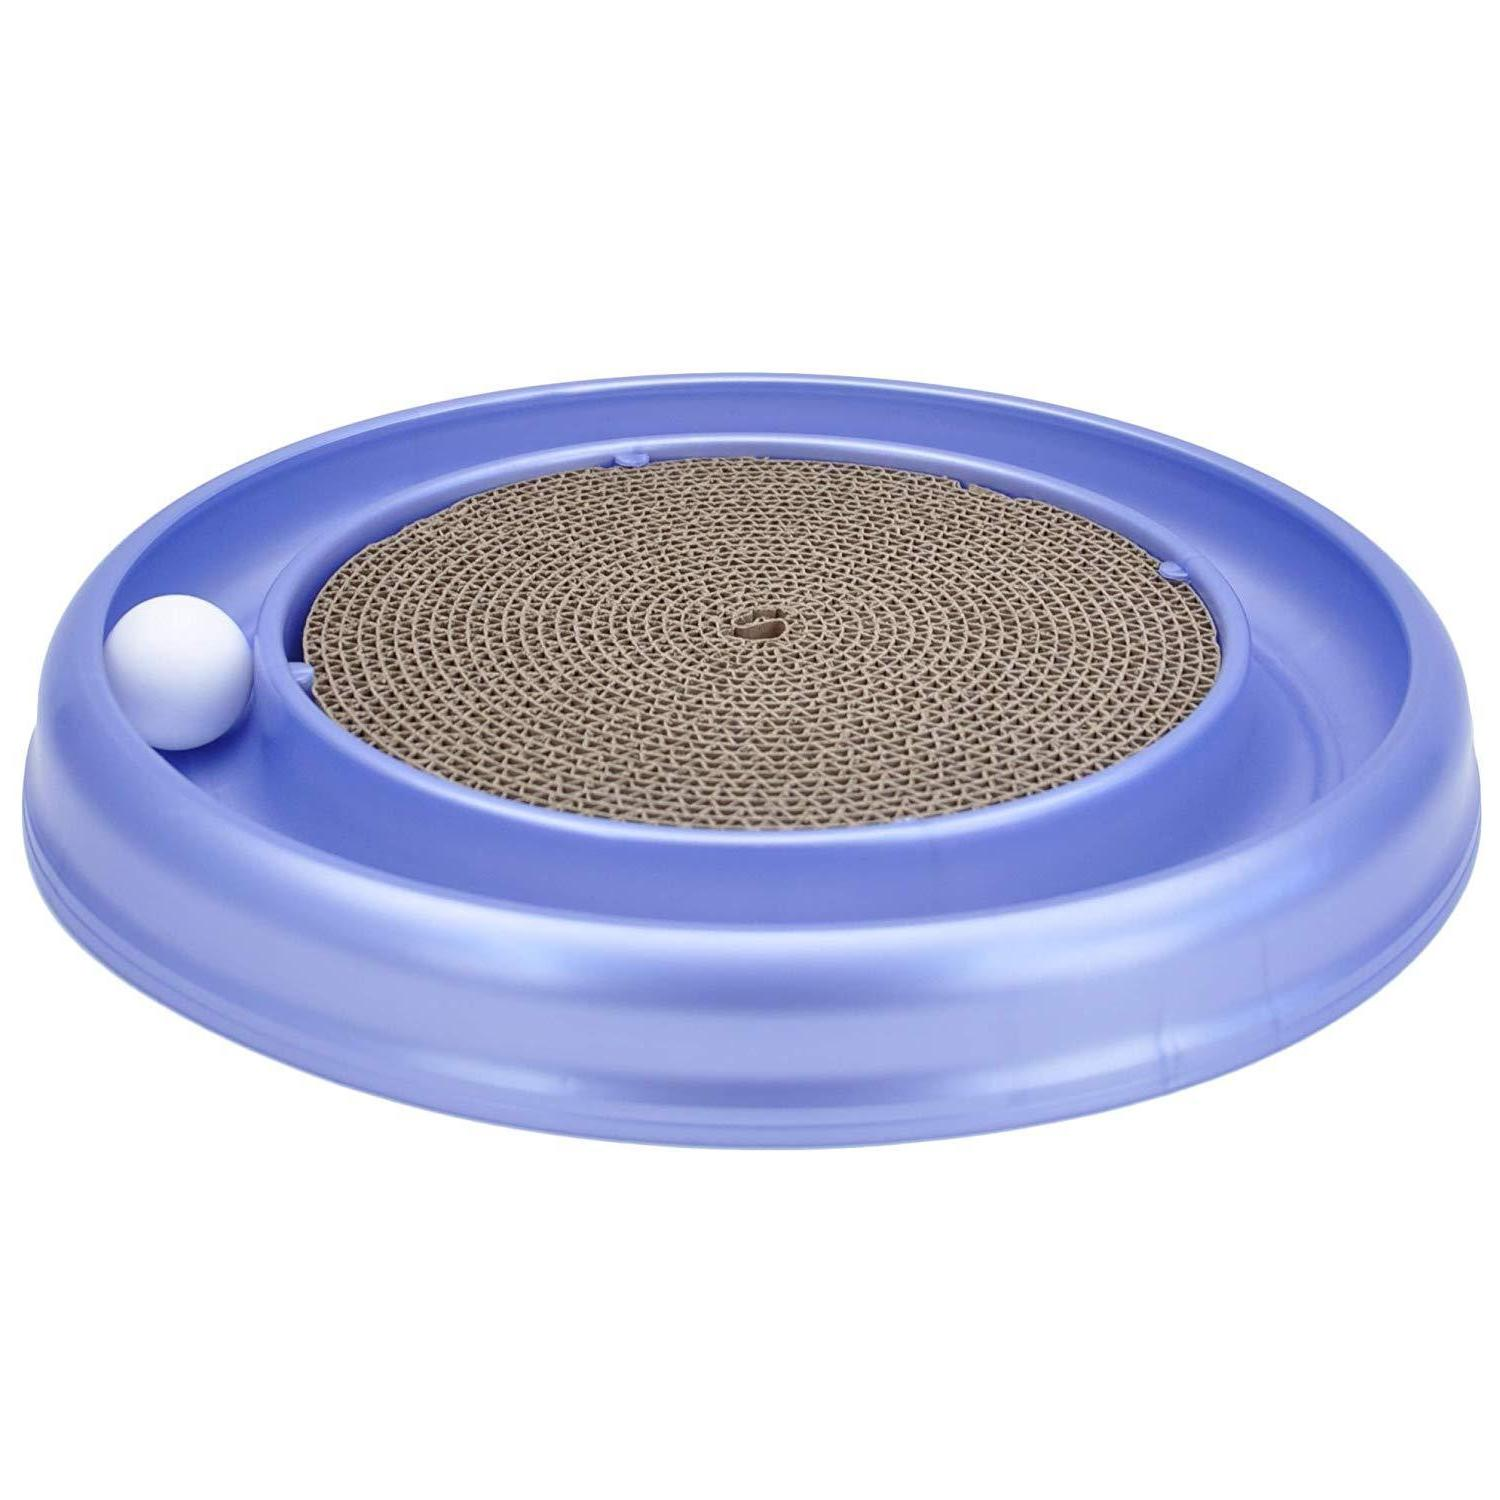 turbo scratcher cat toy with 1 ball